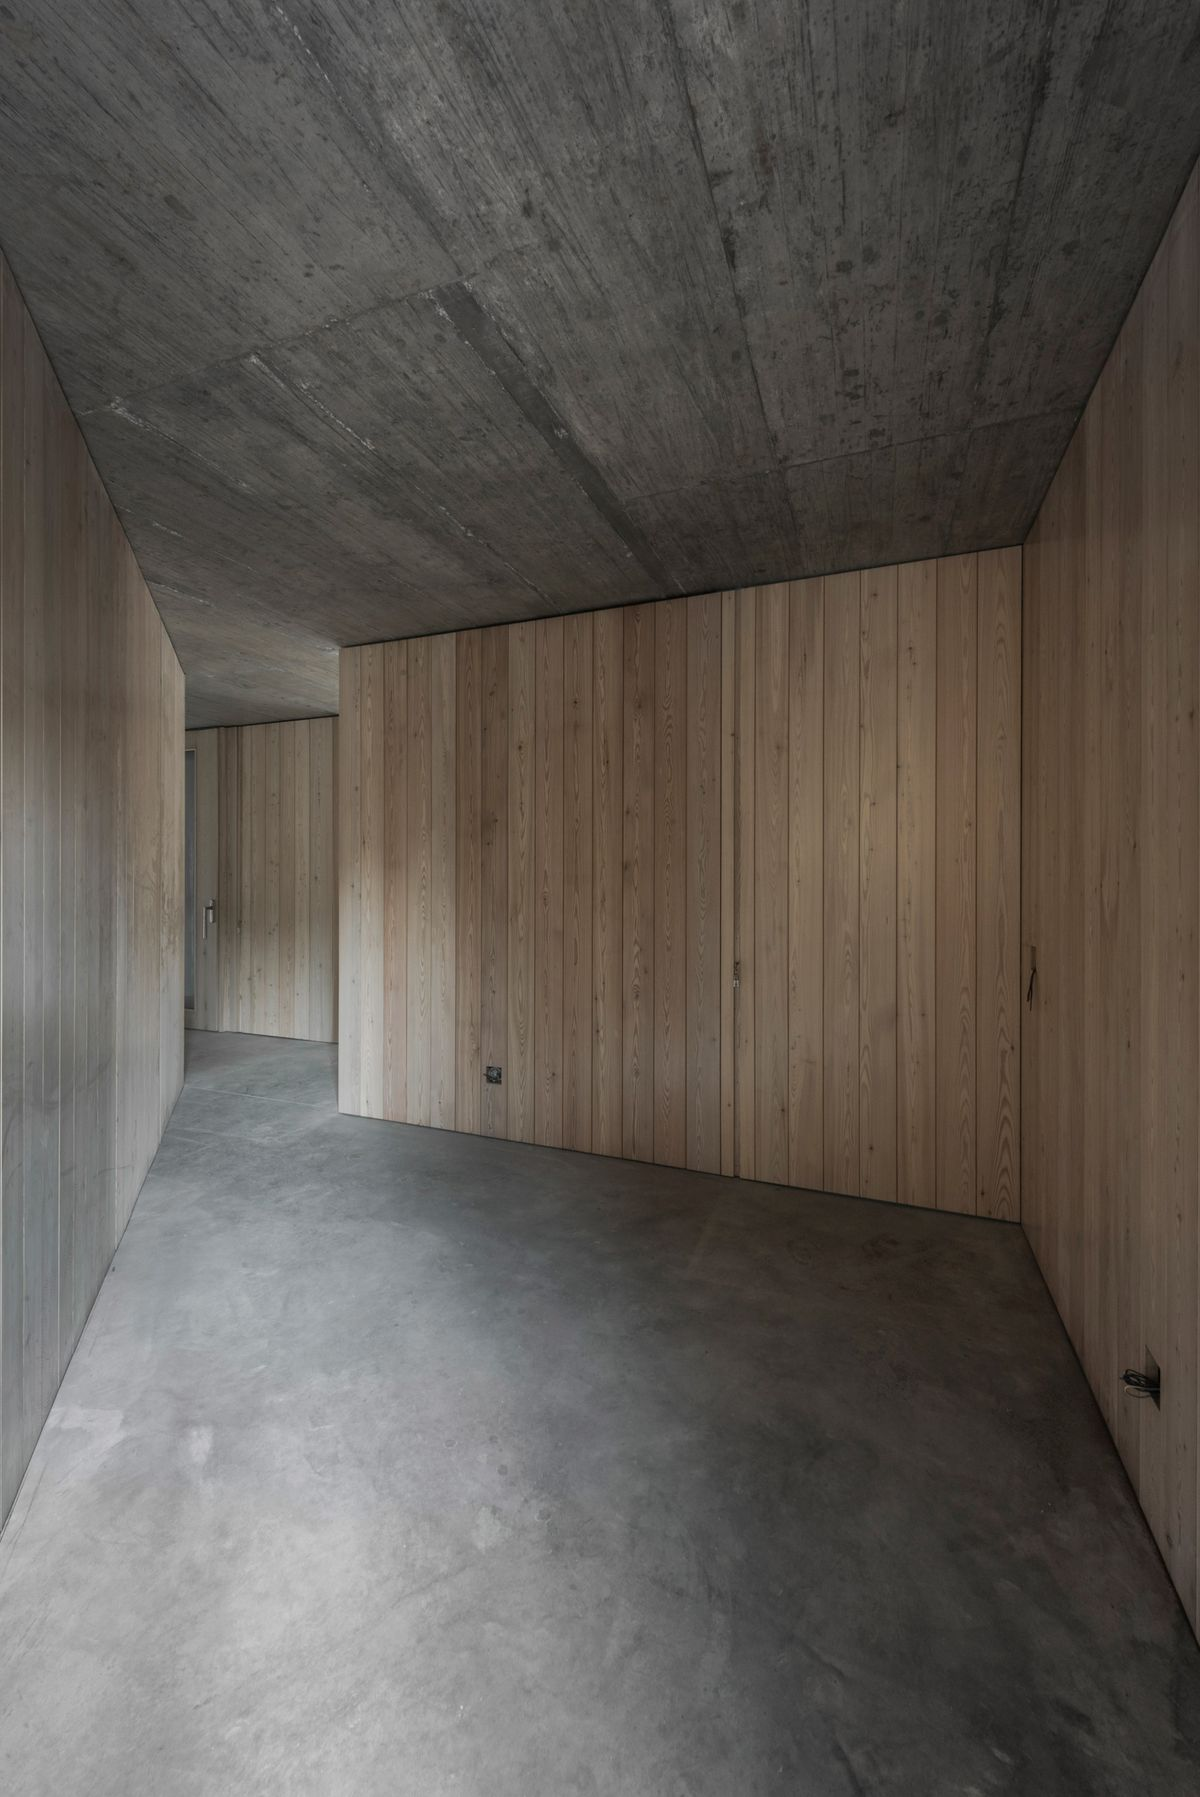 Corridor with raw timber walls and concrete floor and ceiling.